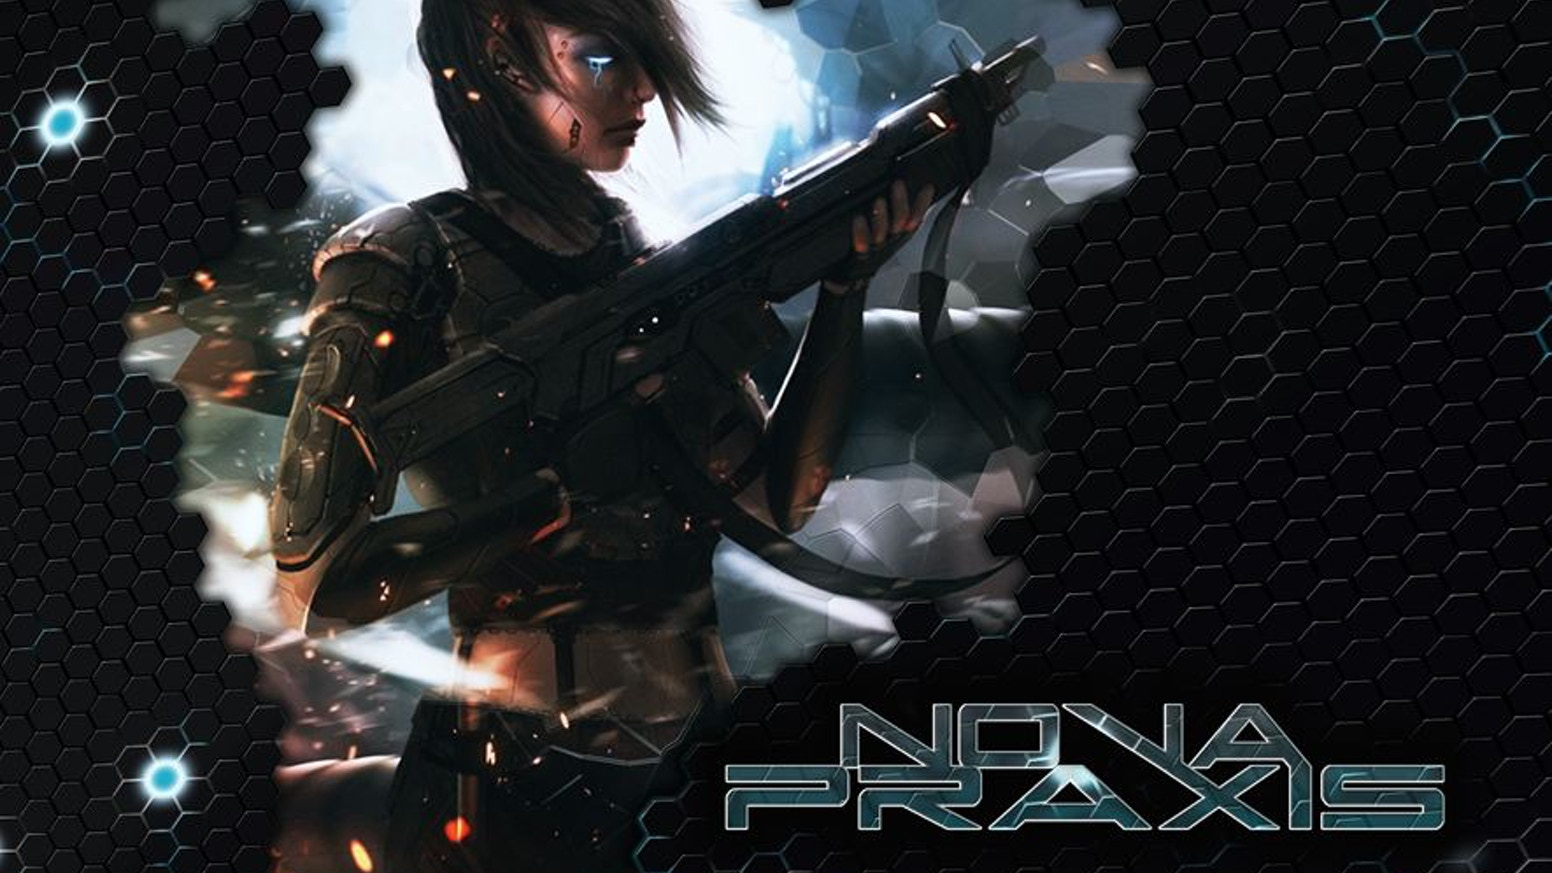 Nova Praxis is a transhuman sci-fi tabletop role-playing game of action, conspiracy, and intrigue.